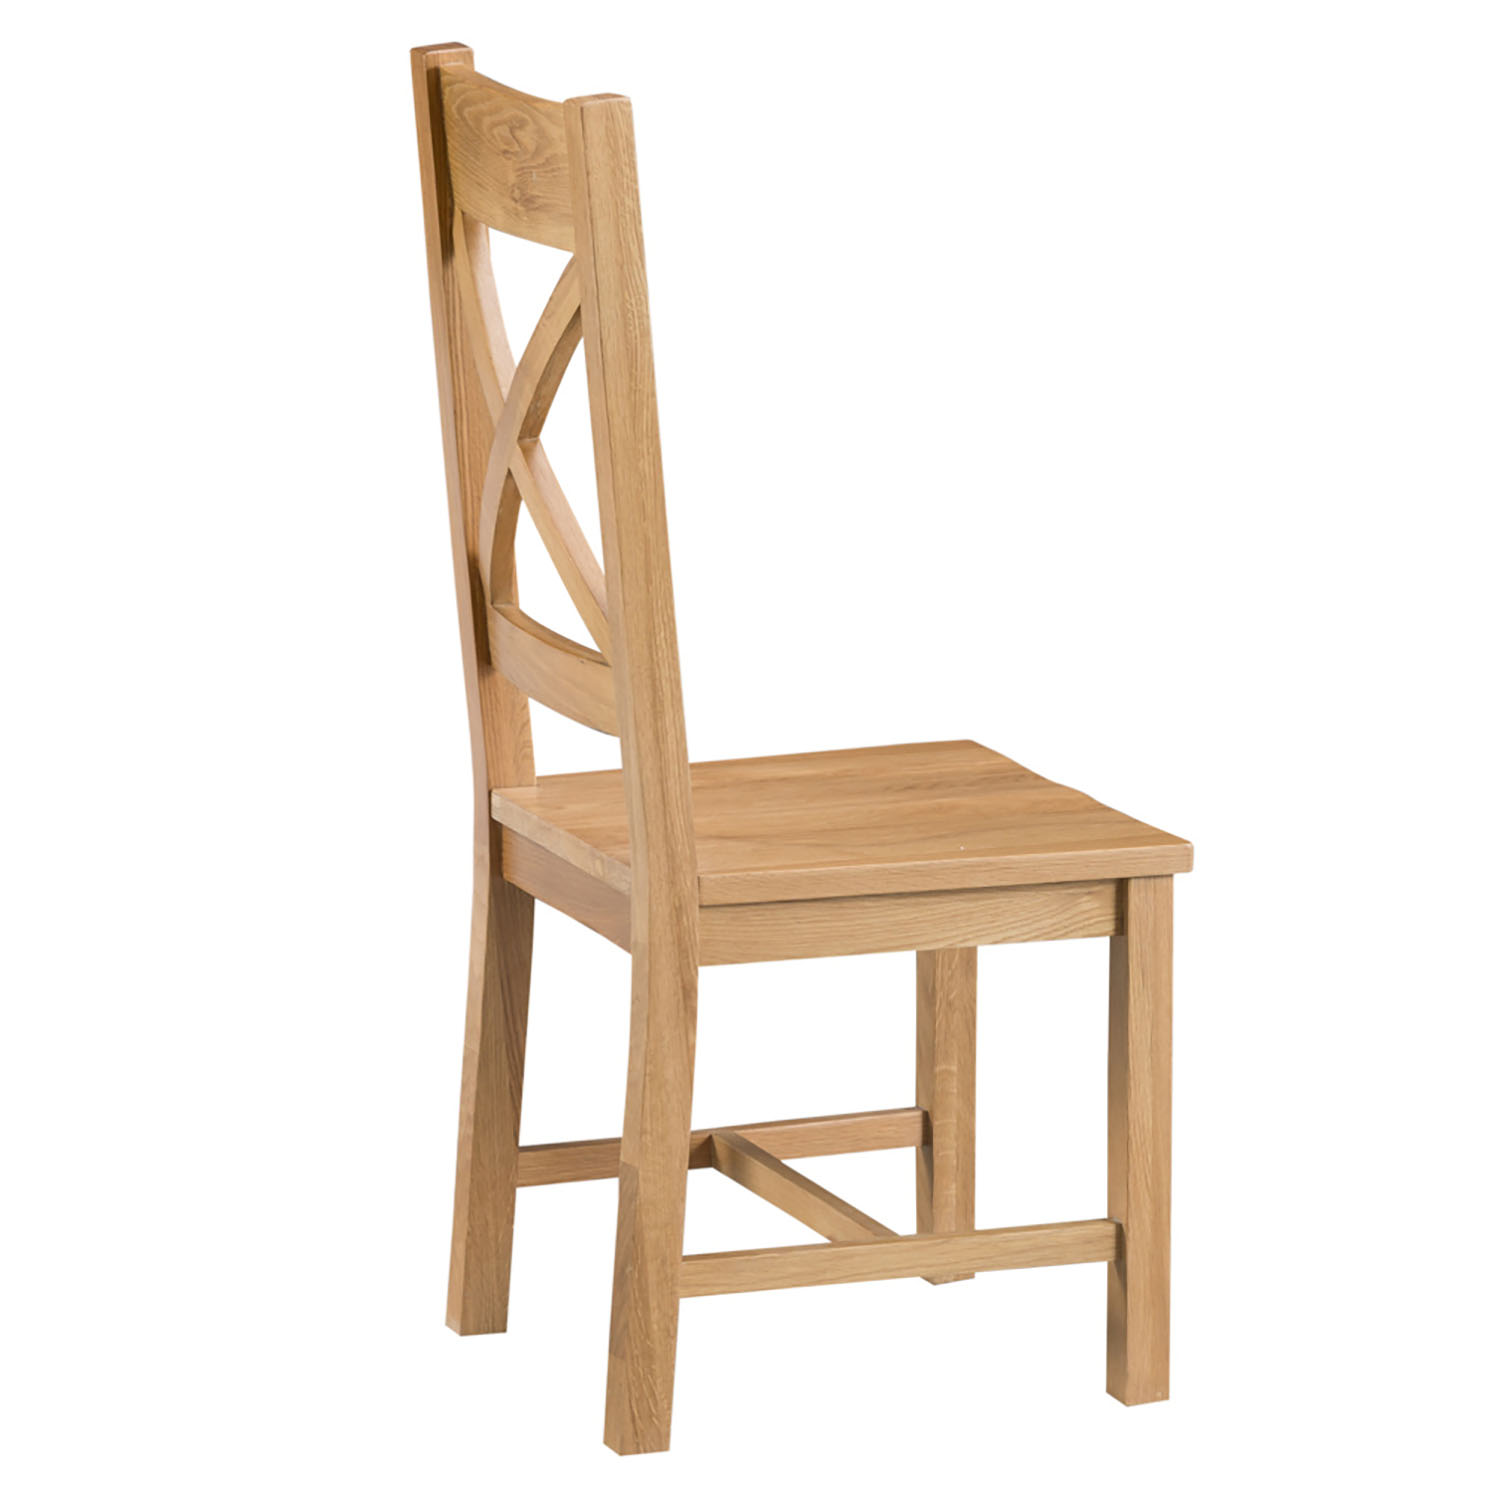 Oakley Rustic Cross Back Chair with Wooden Seat